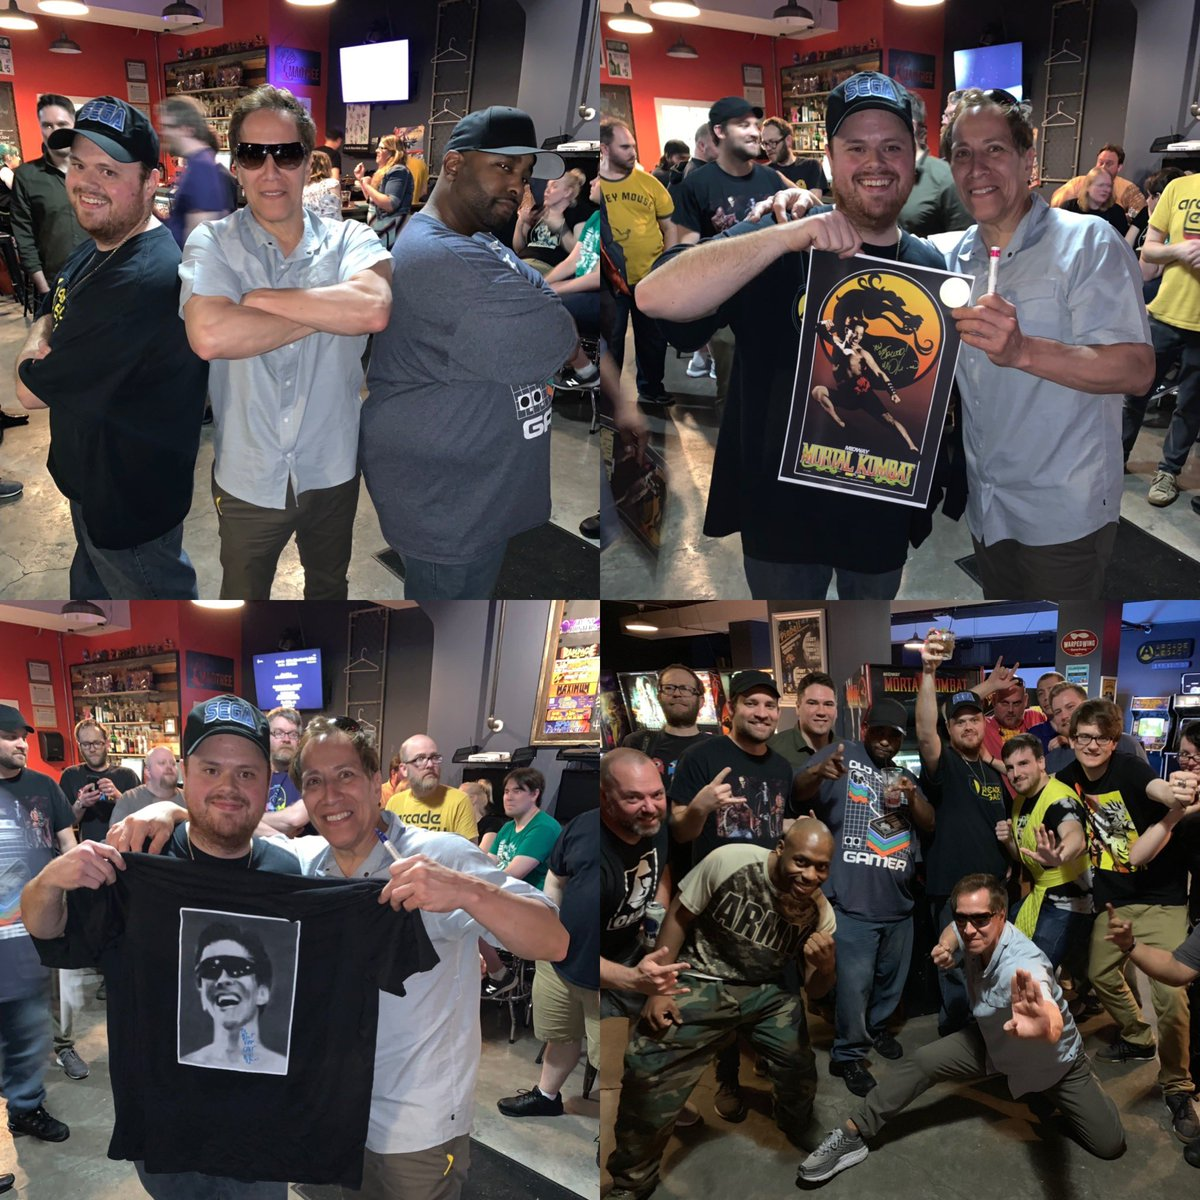 Some of last nights shenanigans thx to everyone @LegacyArcade what an awesomely fun time #johnnycageisnotafraidtodie